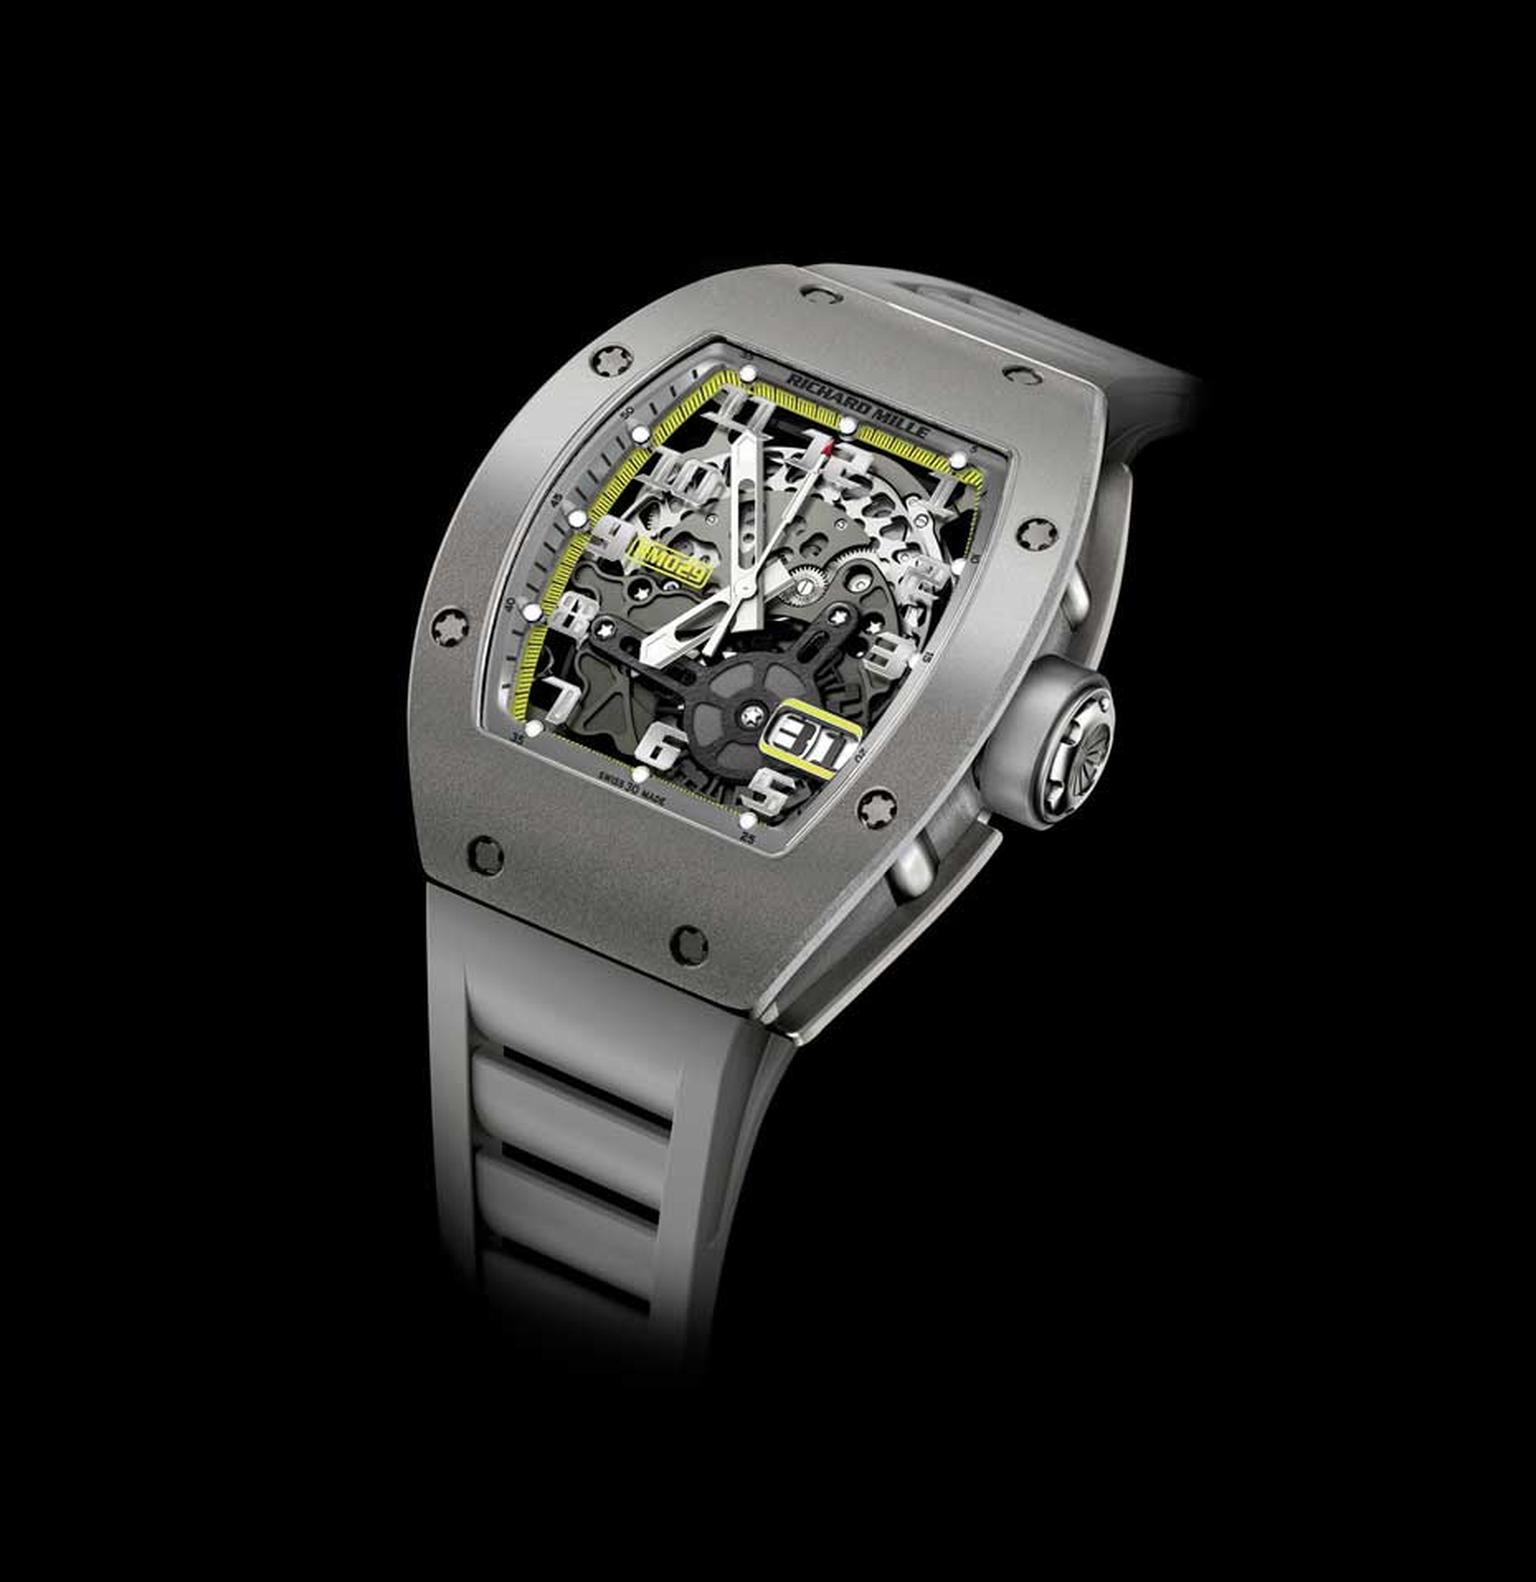 Also available the London boutique is the sleek and stylish RM 029 All Grey Yellow Flash, a declination of Richard Mille's famous RM 010, with a big date window and the exclusivity factor of only being available in the brand's boutiques (£63,000).